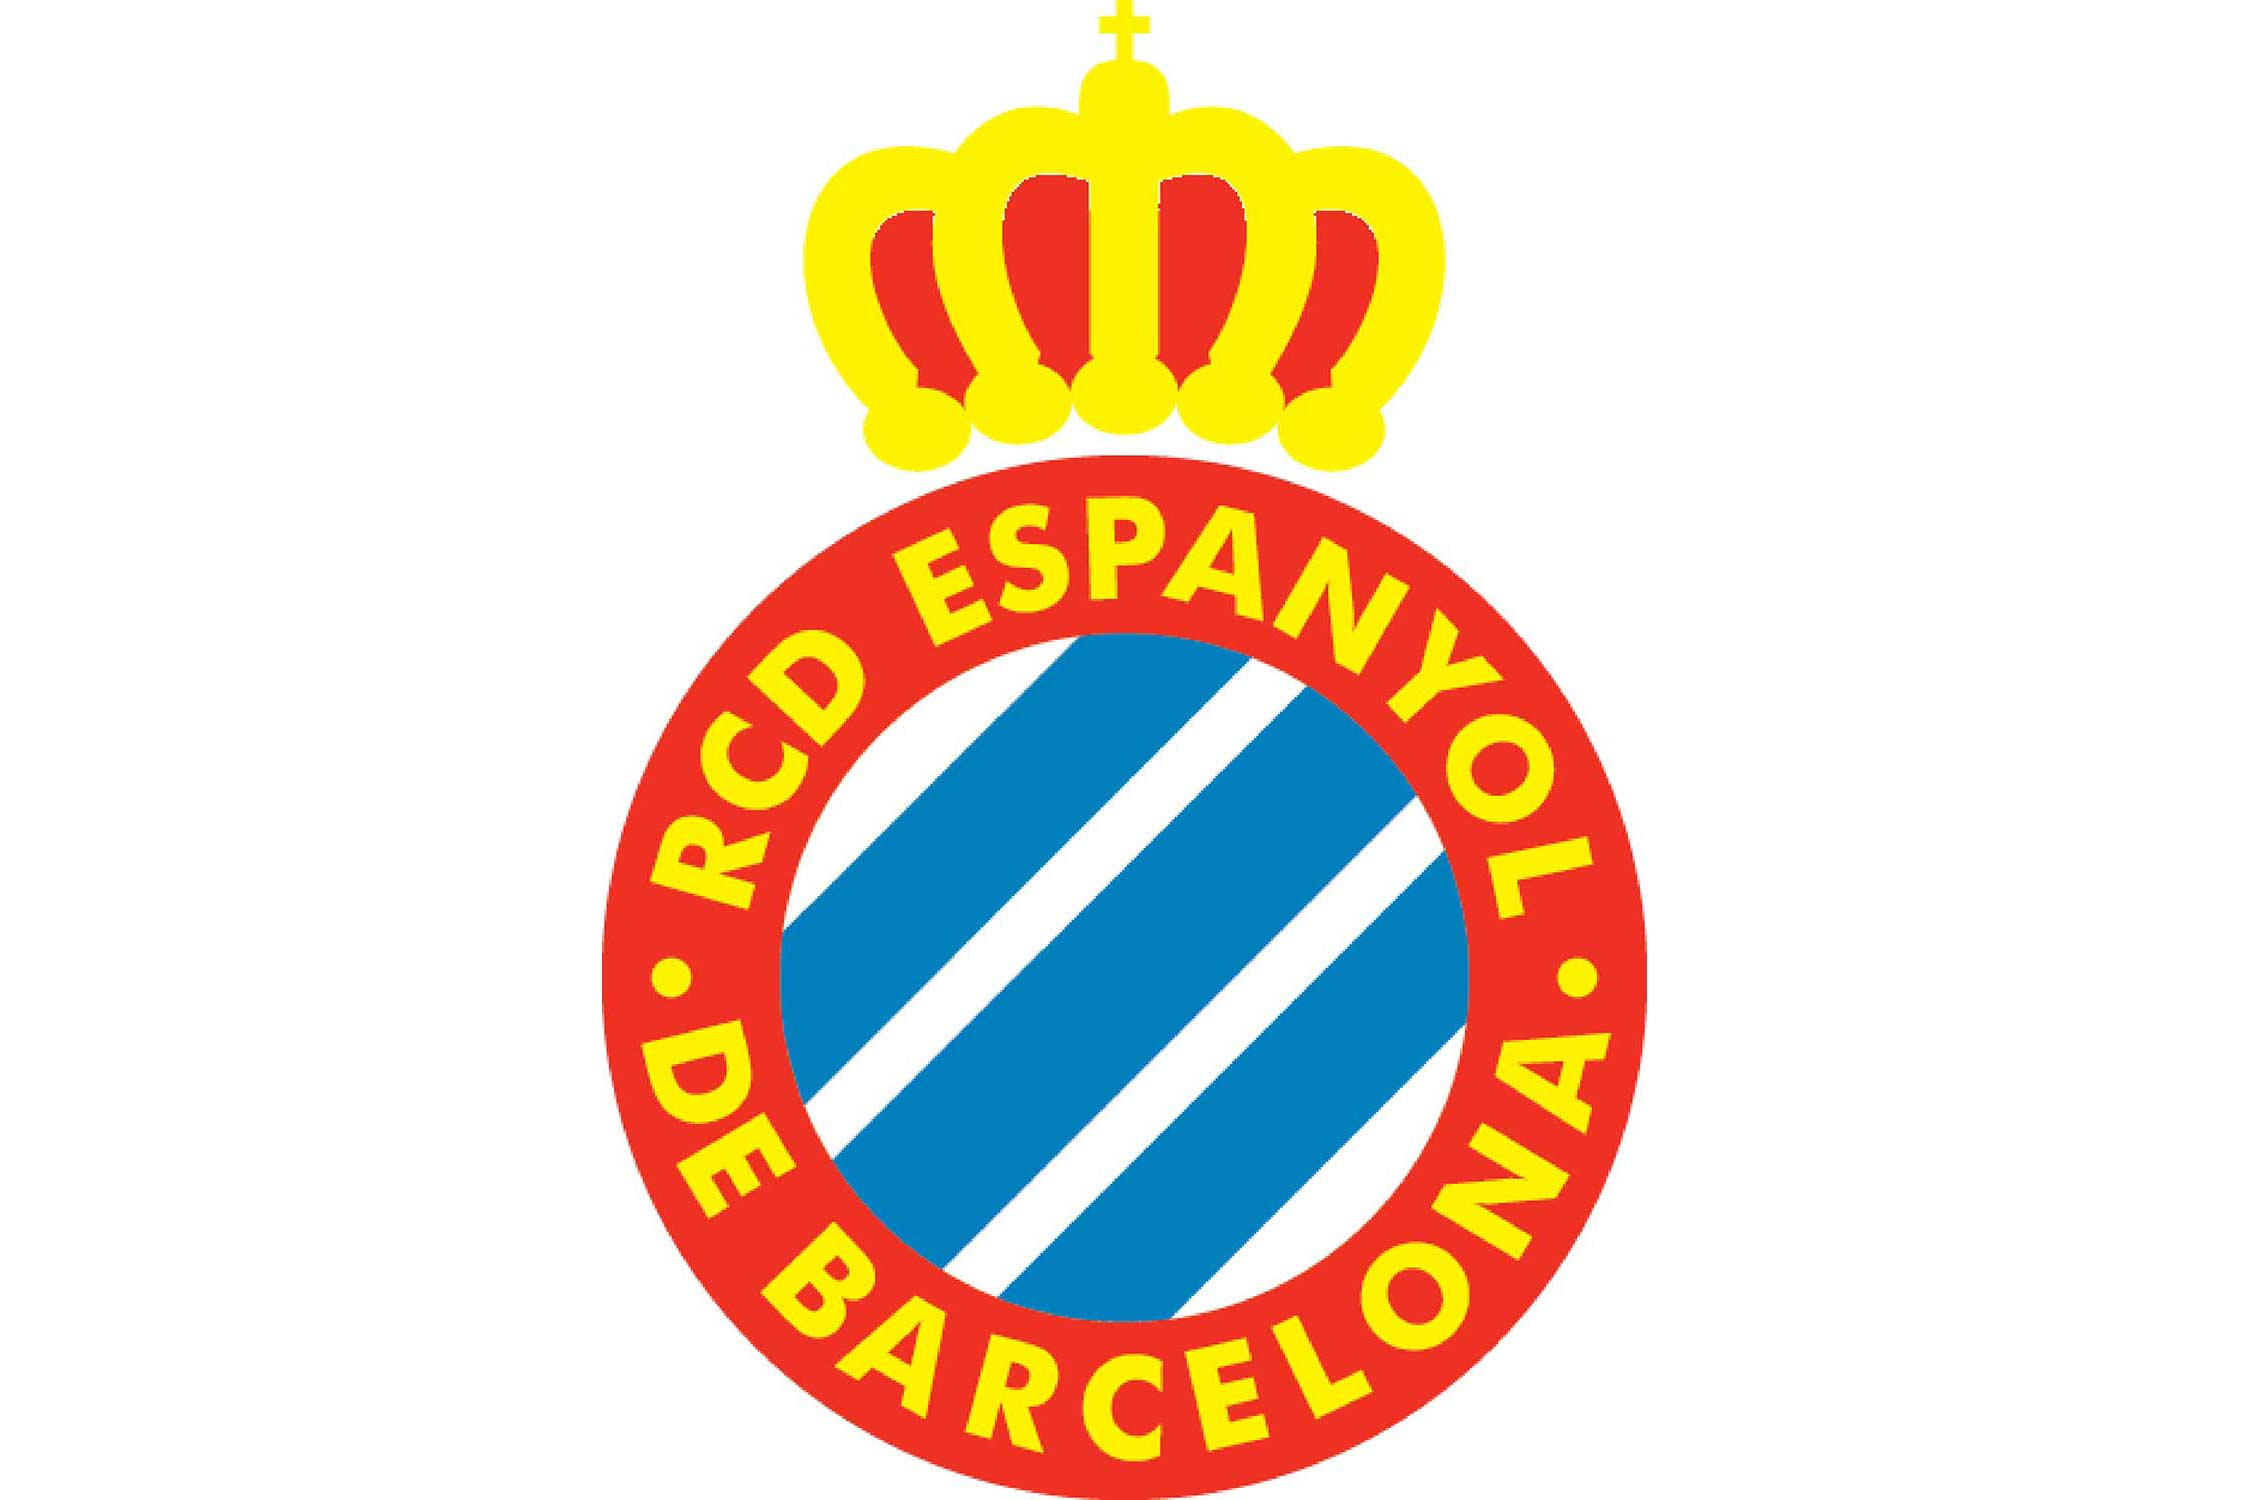 The three blue stripes on the crest of this Barcelona club come from the coat of arms of Roger de Lauria, an admiral that commanded the city's fleet in the 13th century and won many battles.